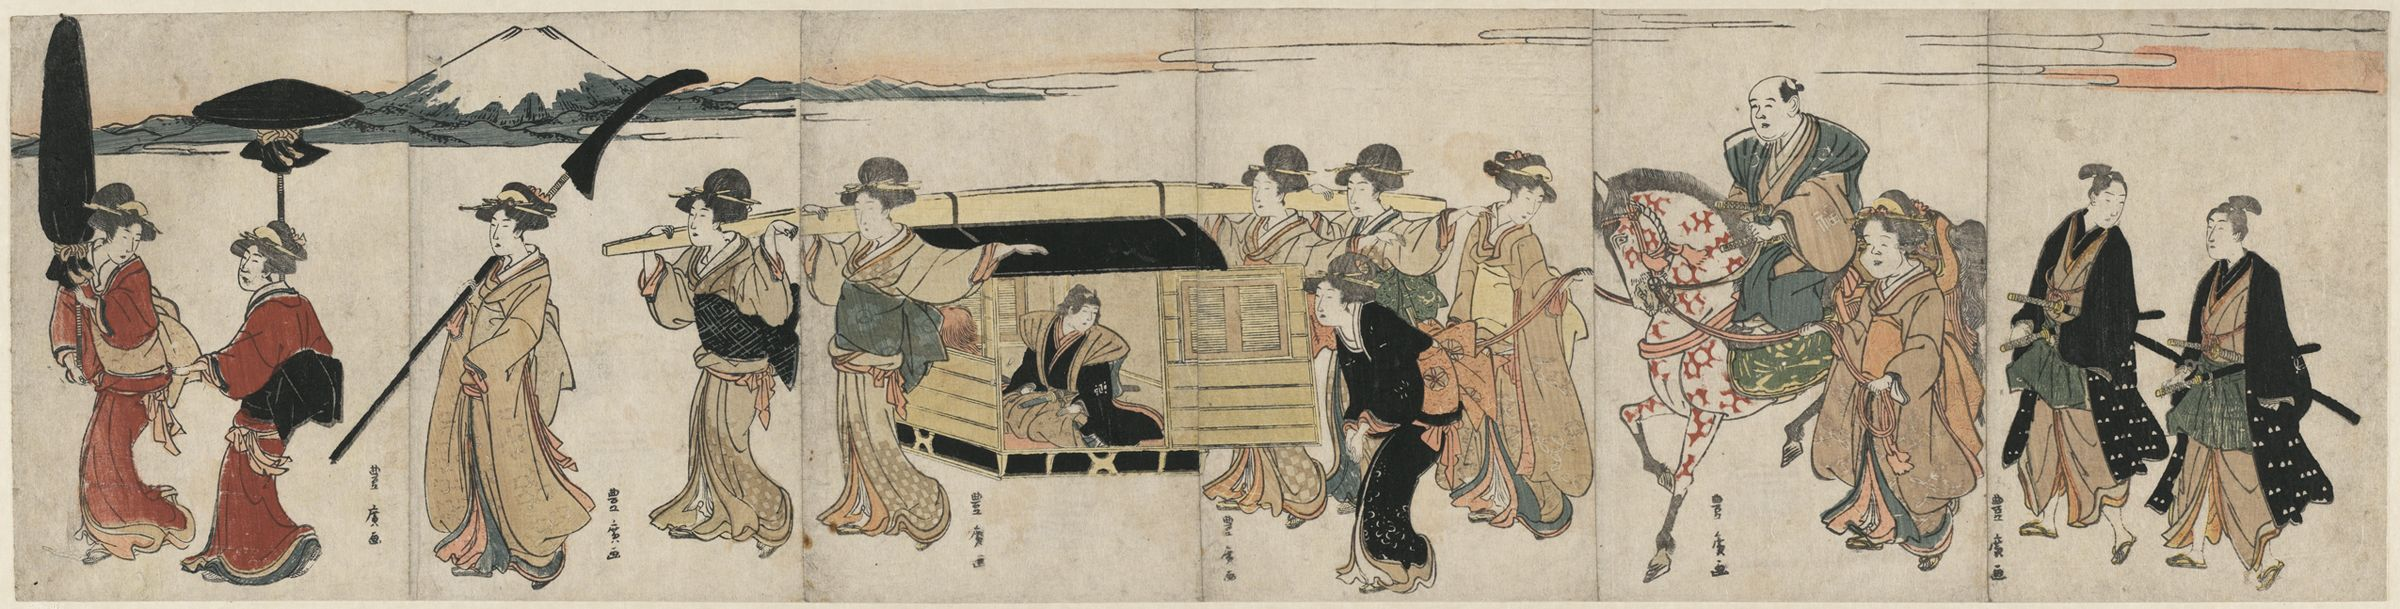 Procession Of Women Carrying Palanquin